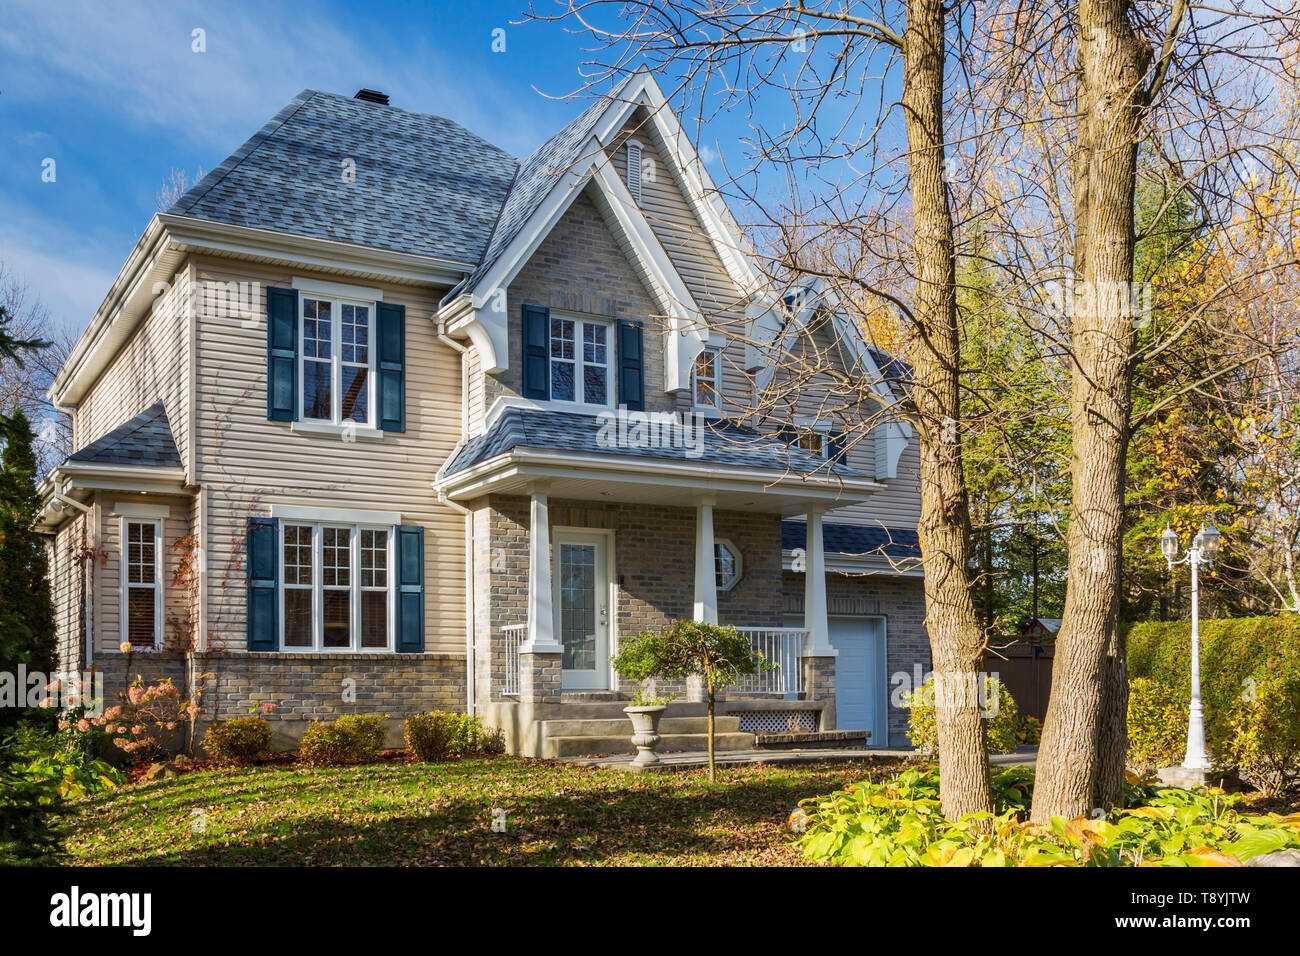 But you can get better fire protection by going instead for simulated wood shingles. Country Tan Brick And Vinyl Cladded Cottage Style House Facade With Blue Trim And Asphalt Shingles Roof In Autumn Quebec Canada This Image Is Property Released Cupr0340 Stock Photo Alamy